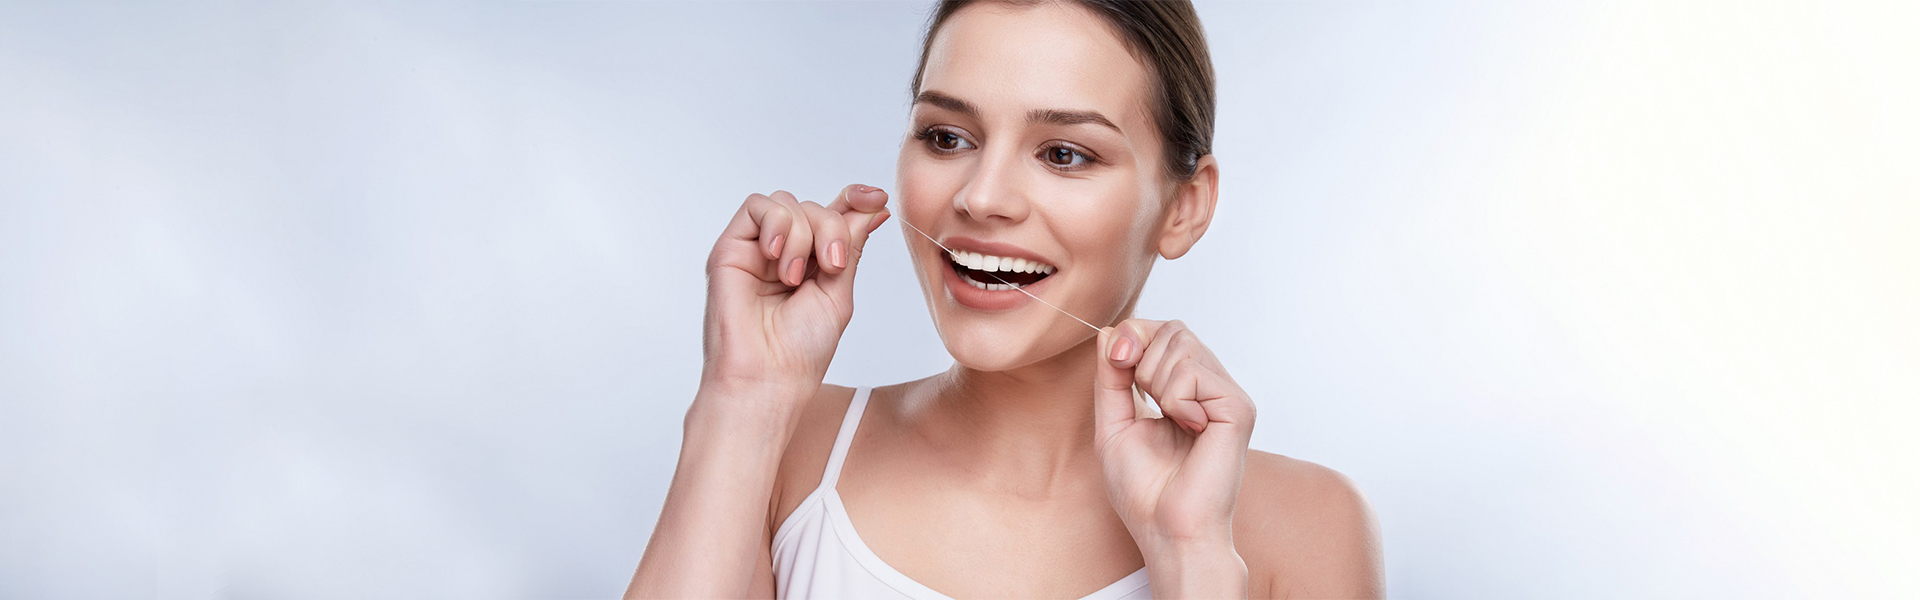 What are the benefits of Fluoride Treatment?